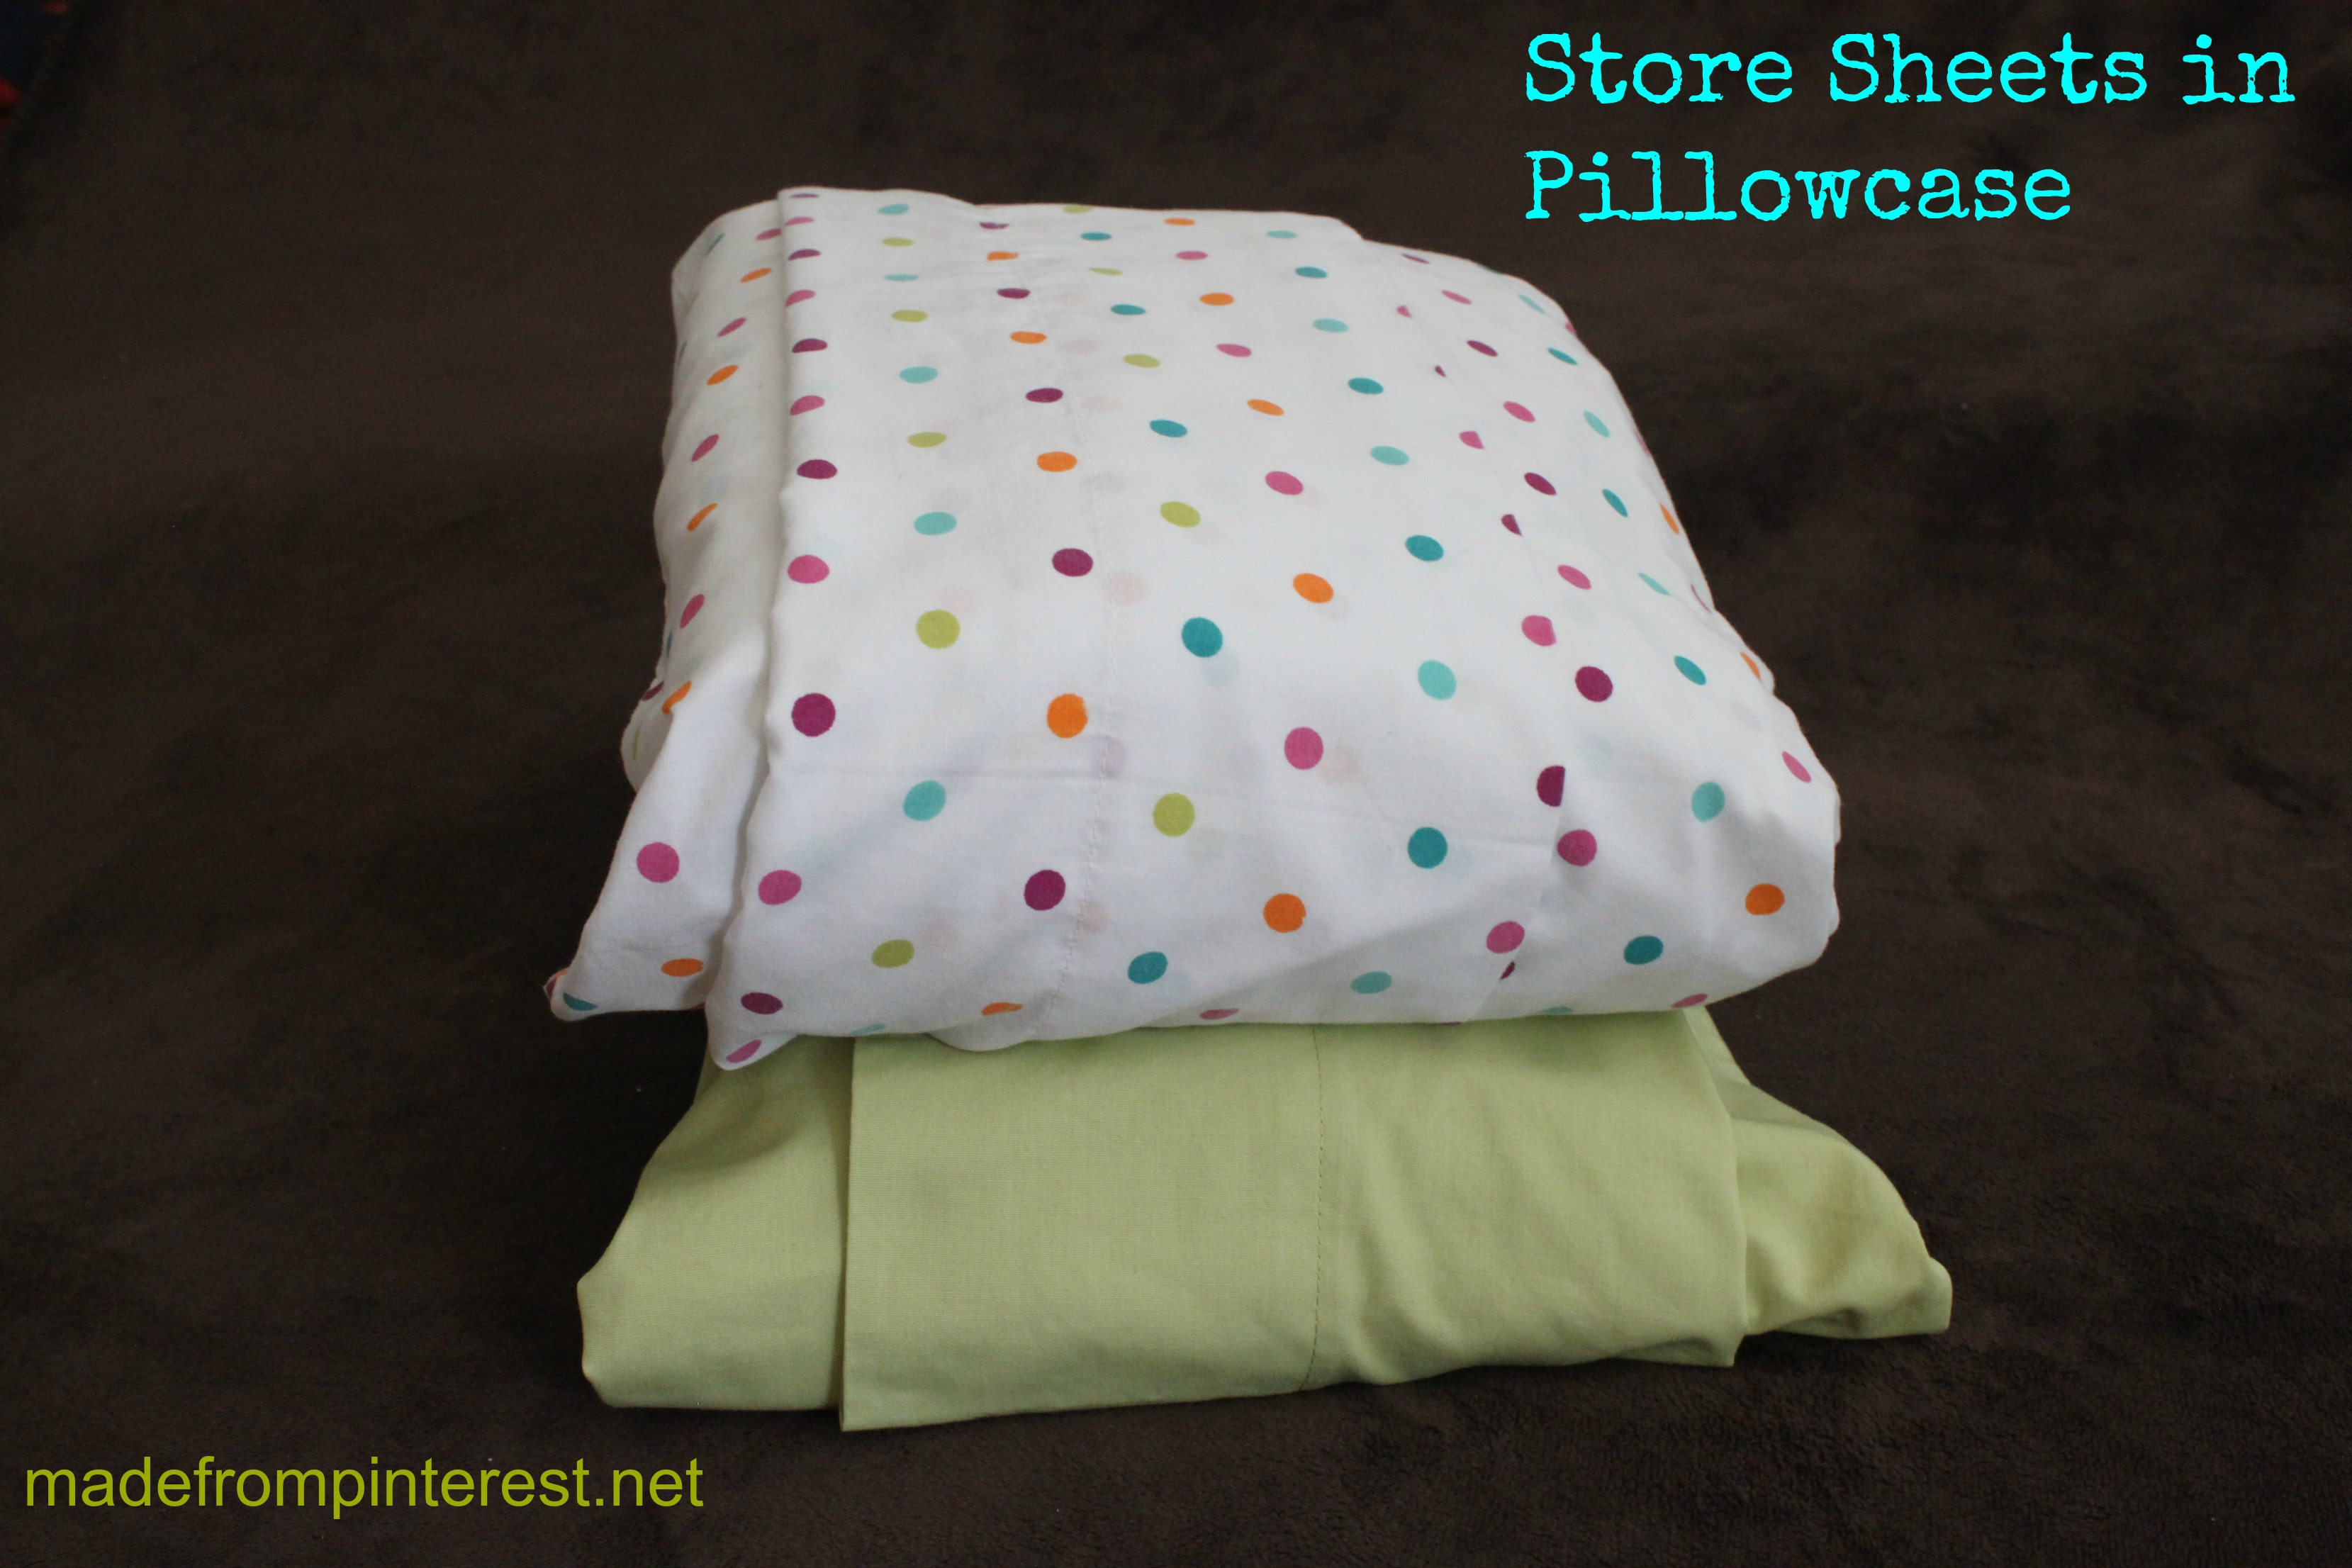 Storing Sheets in Pillowcases